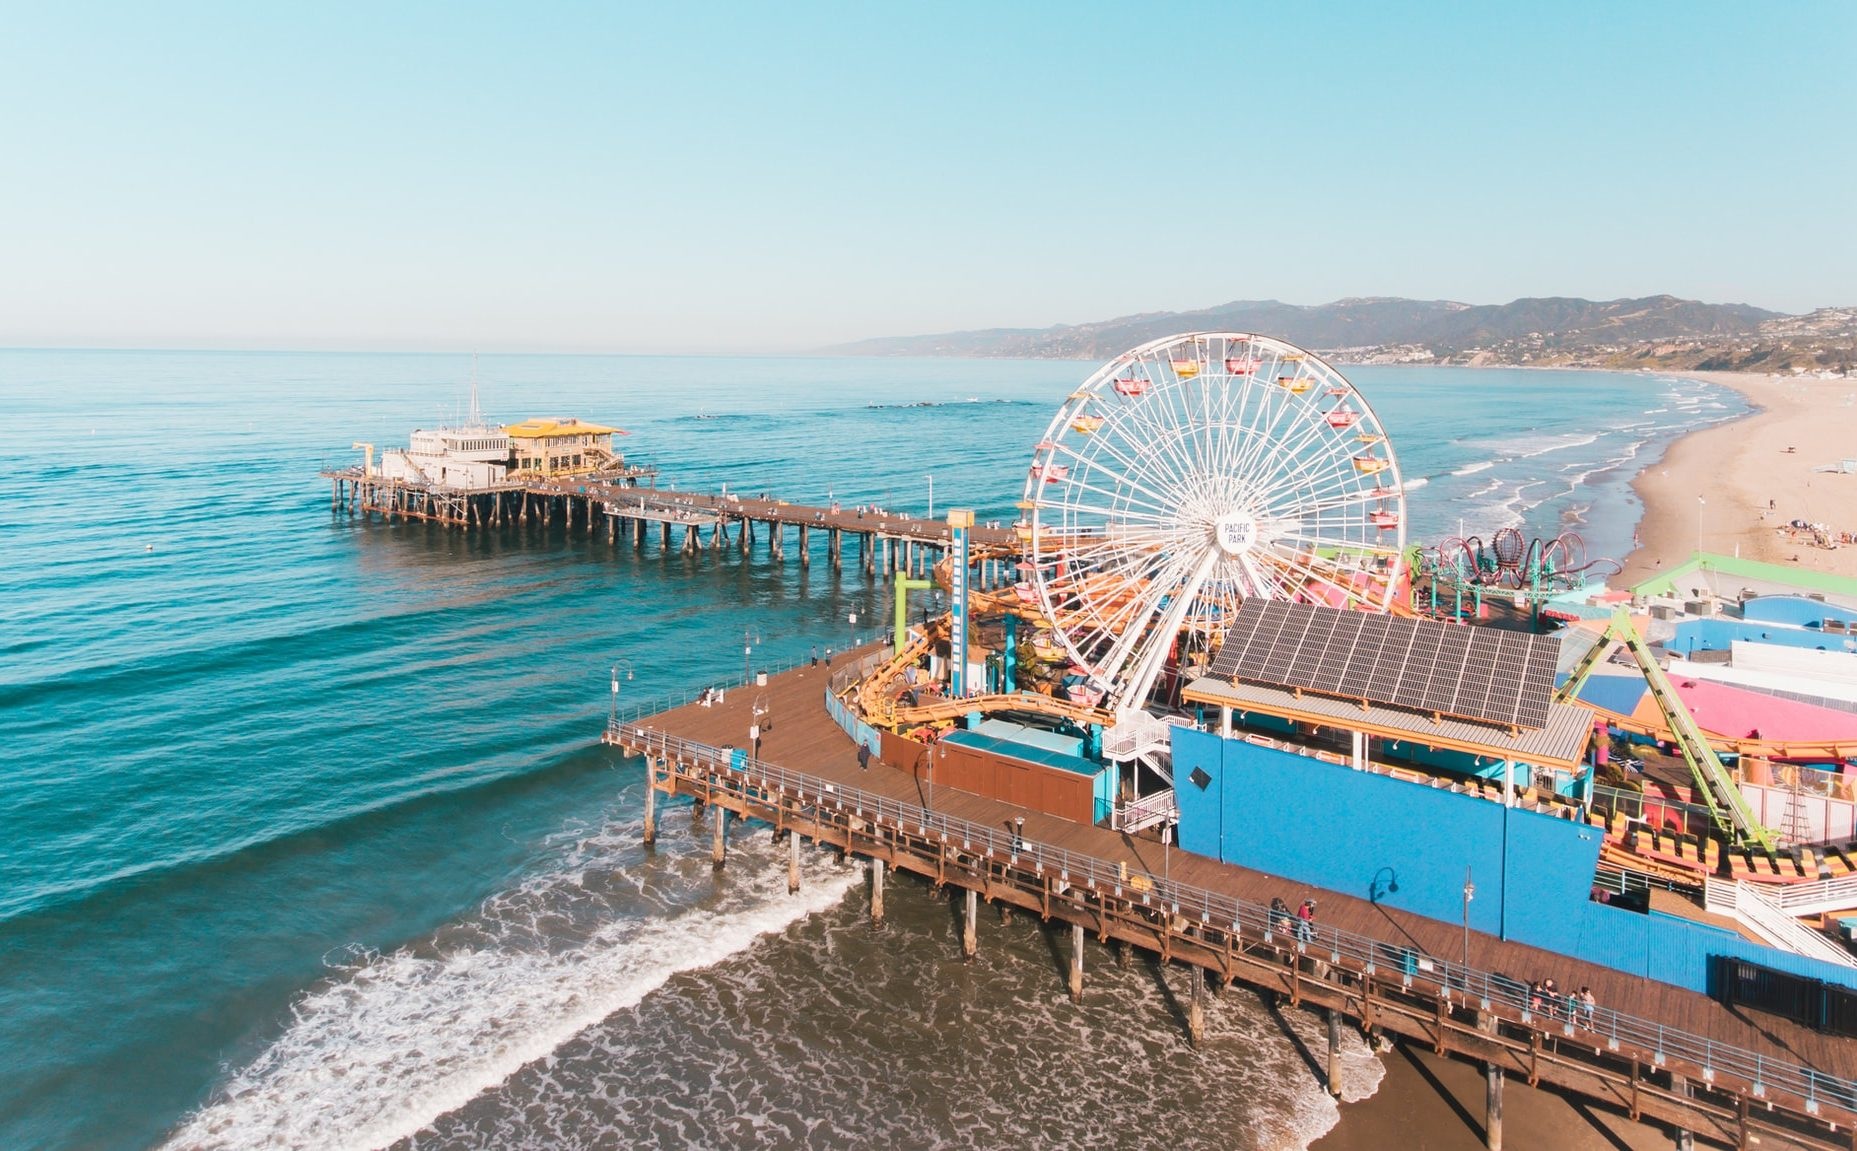 Santa Monica Pier with Ferris wheel